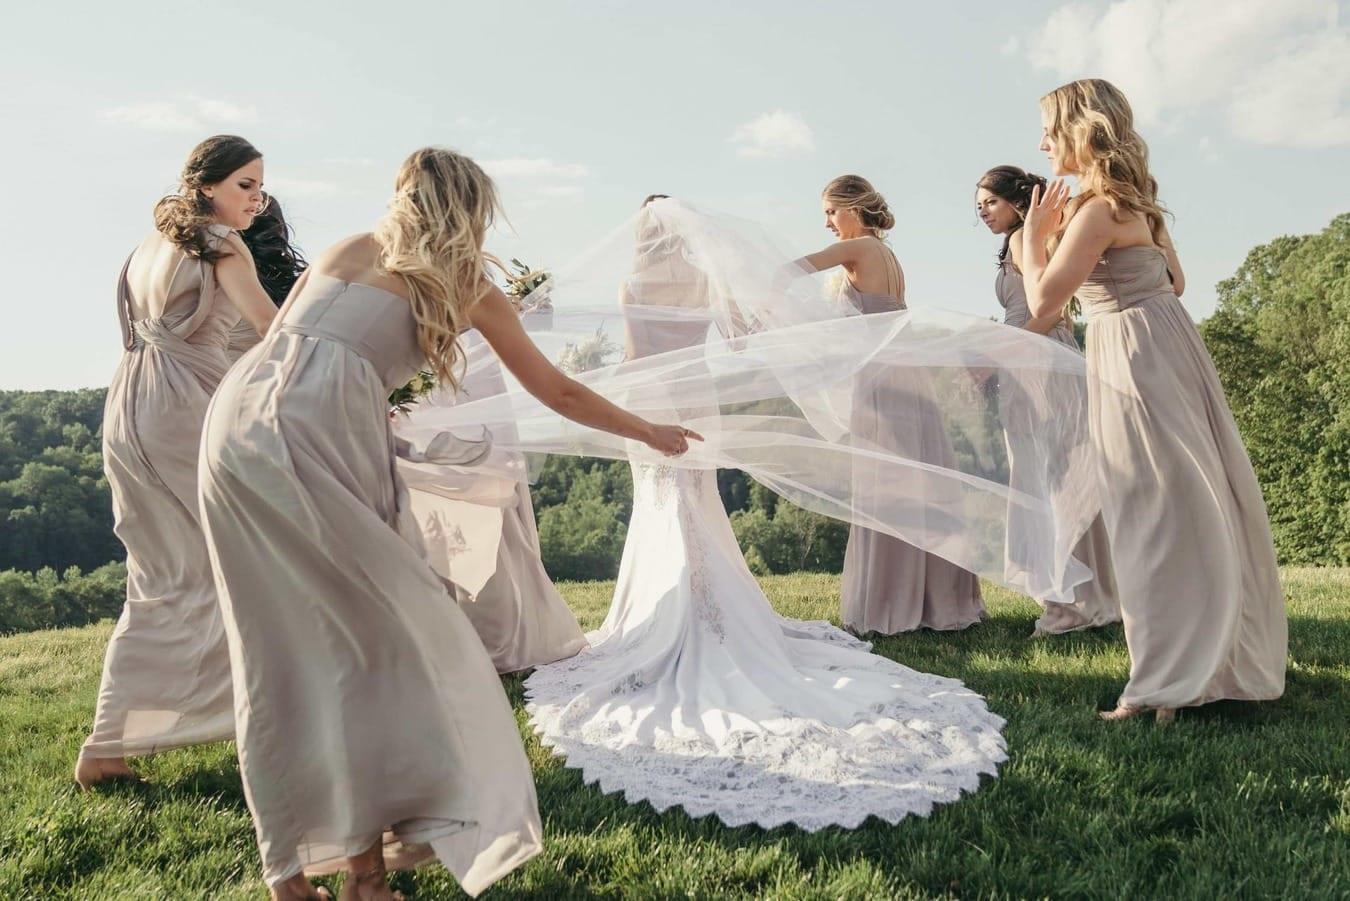 Bridesmaids circle around bride and one holds bride's veil as the wind blows it.